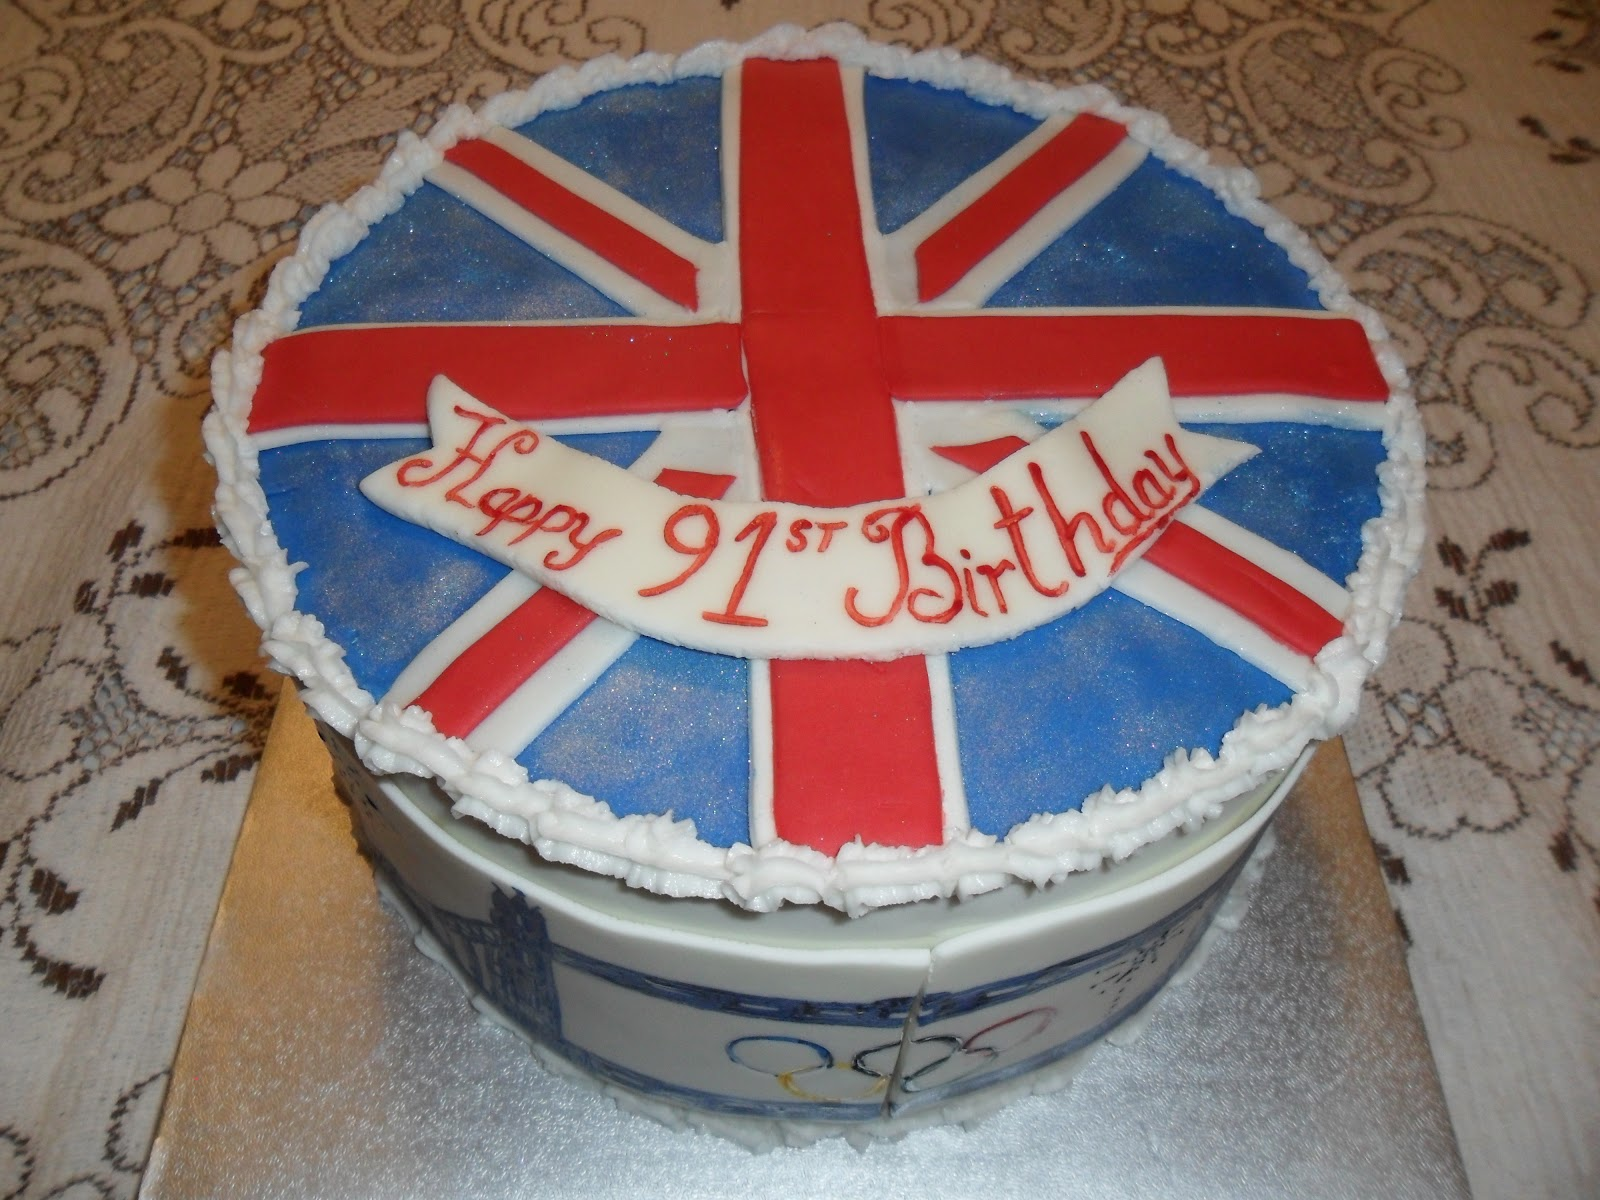 Larry The Cake Guy A Very British Birthday